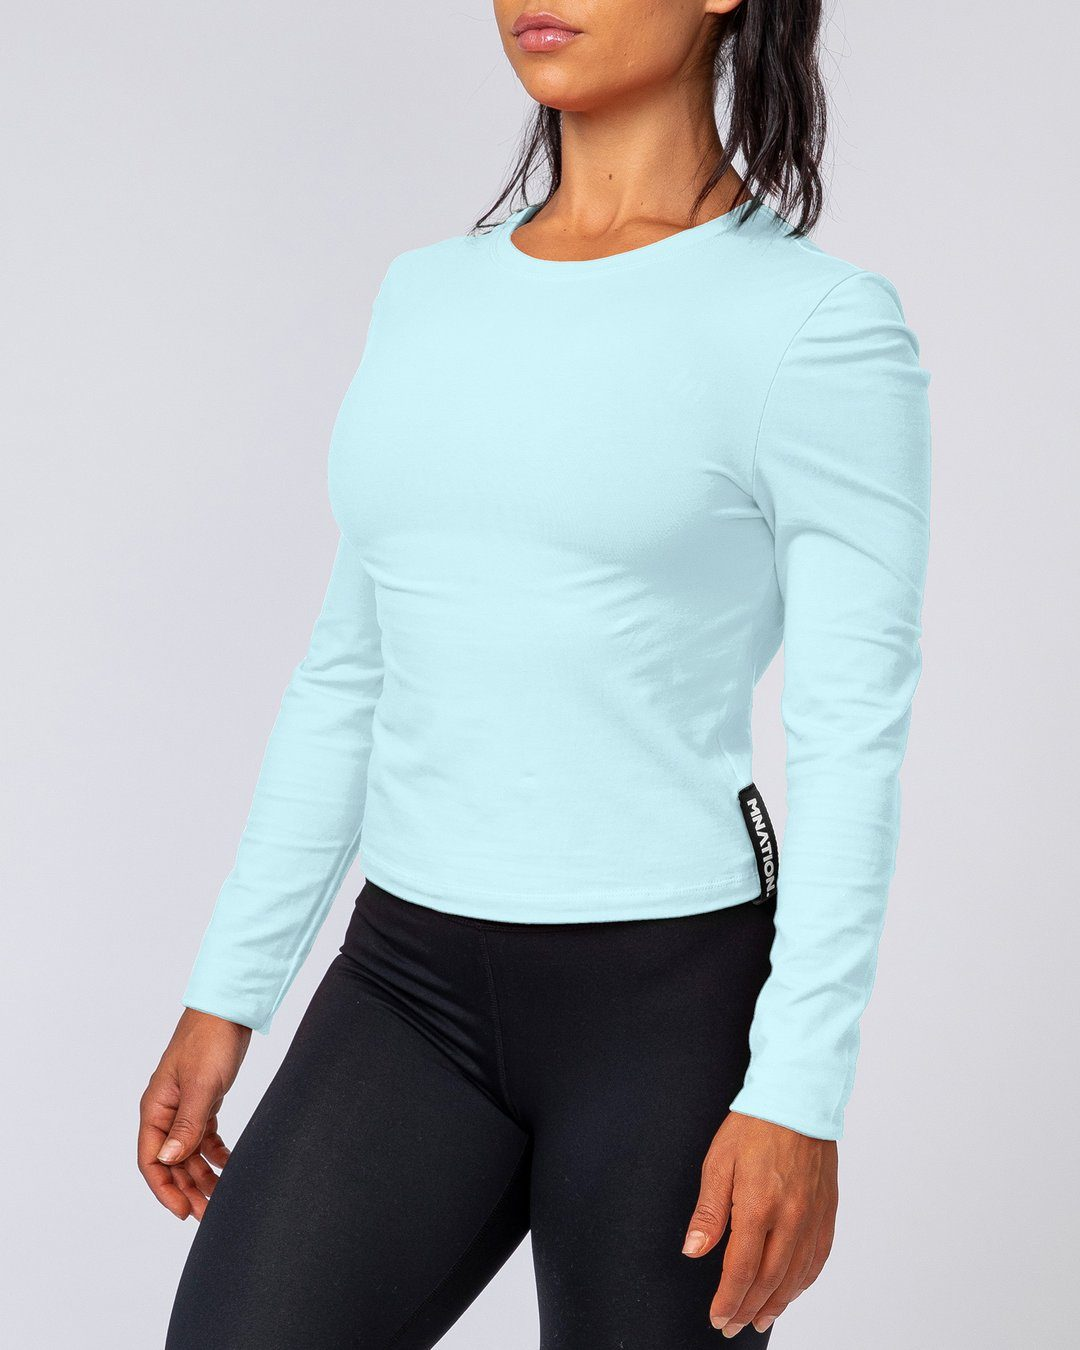 Muscle Nation Women's Long Sleeve - Sky Blue